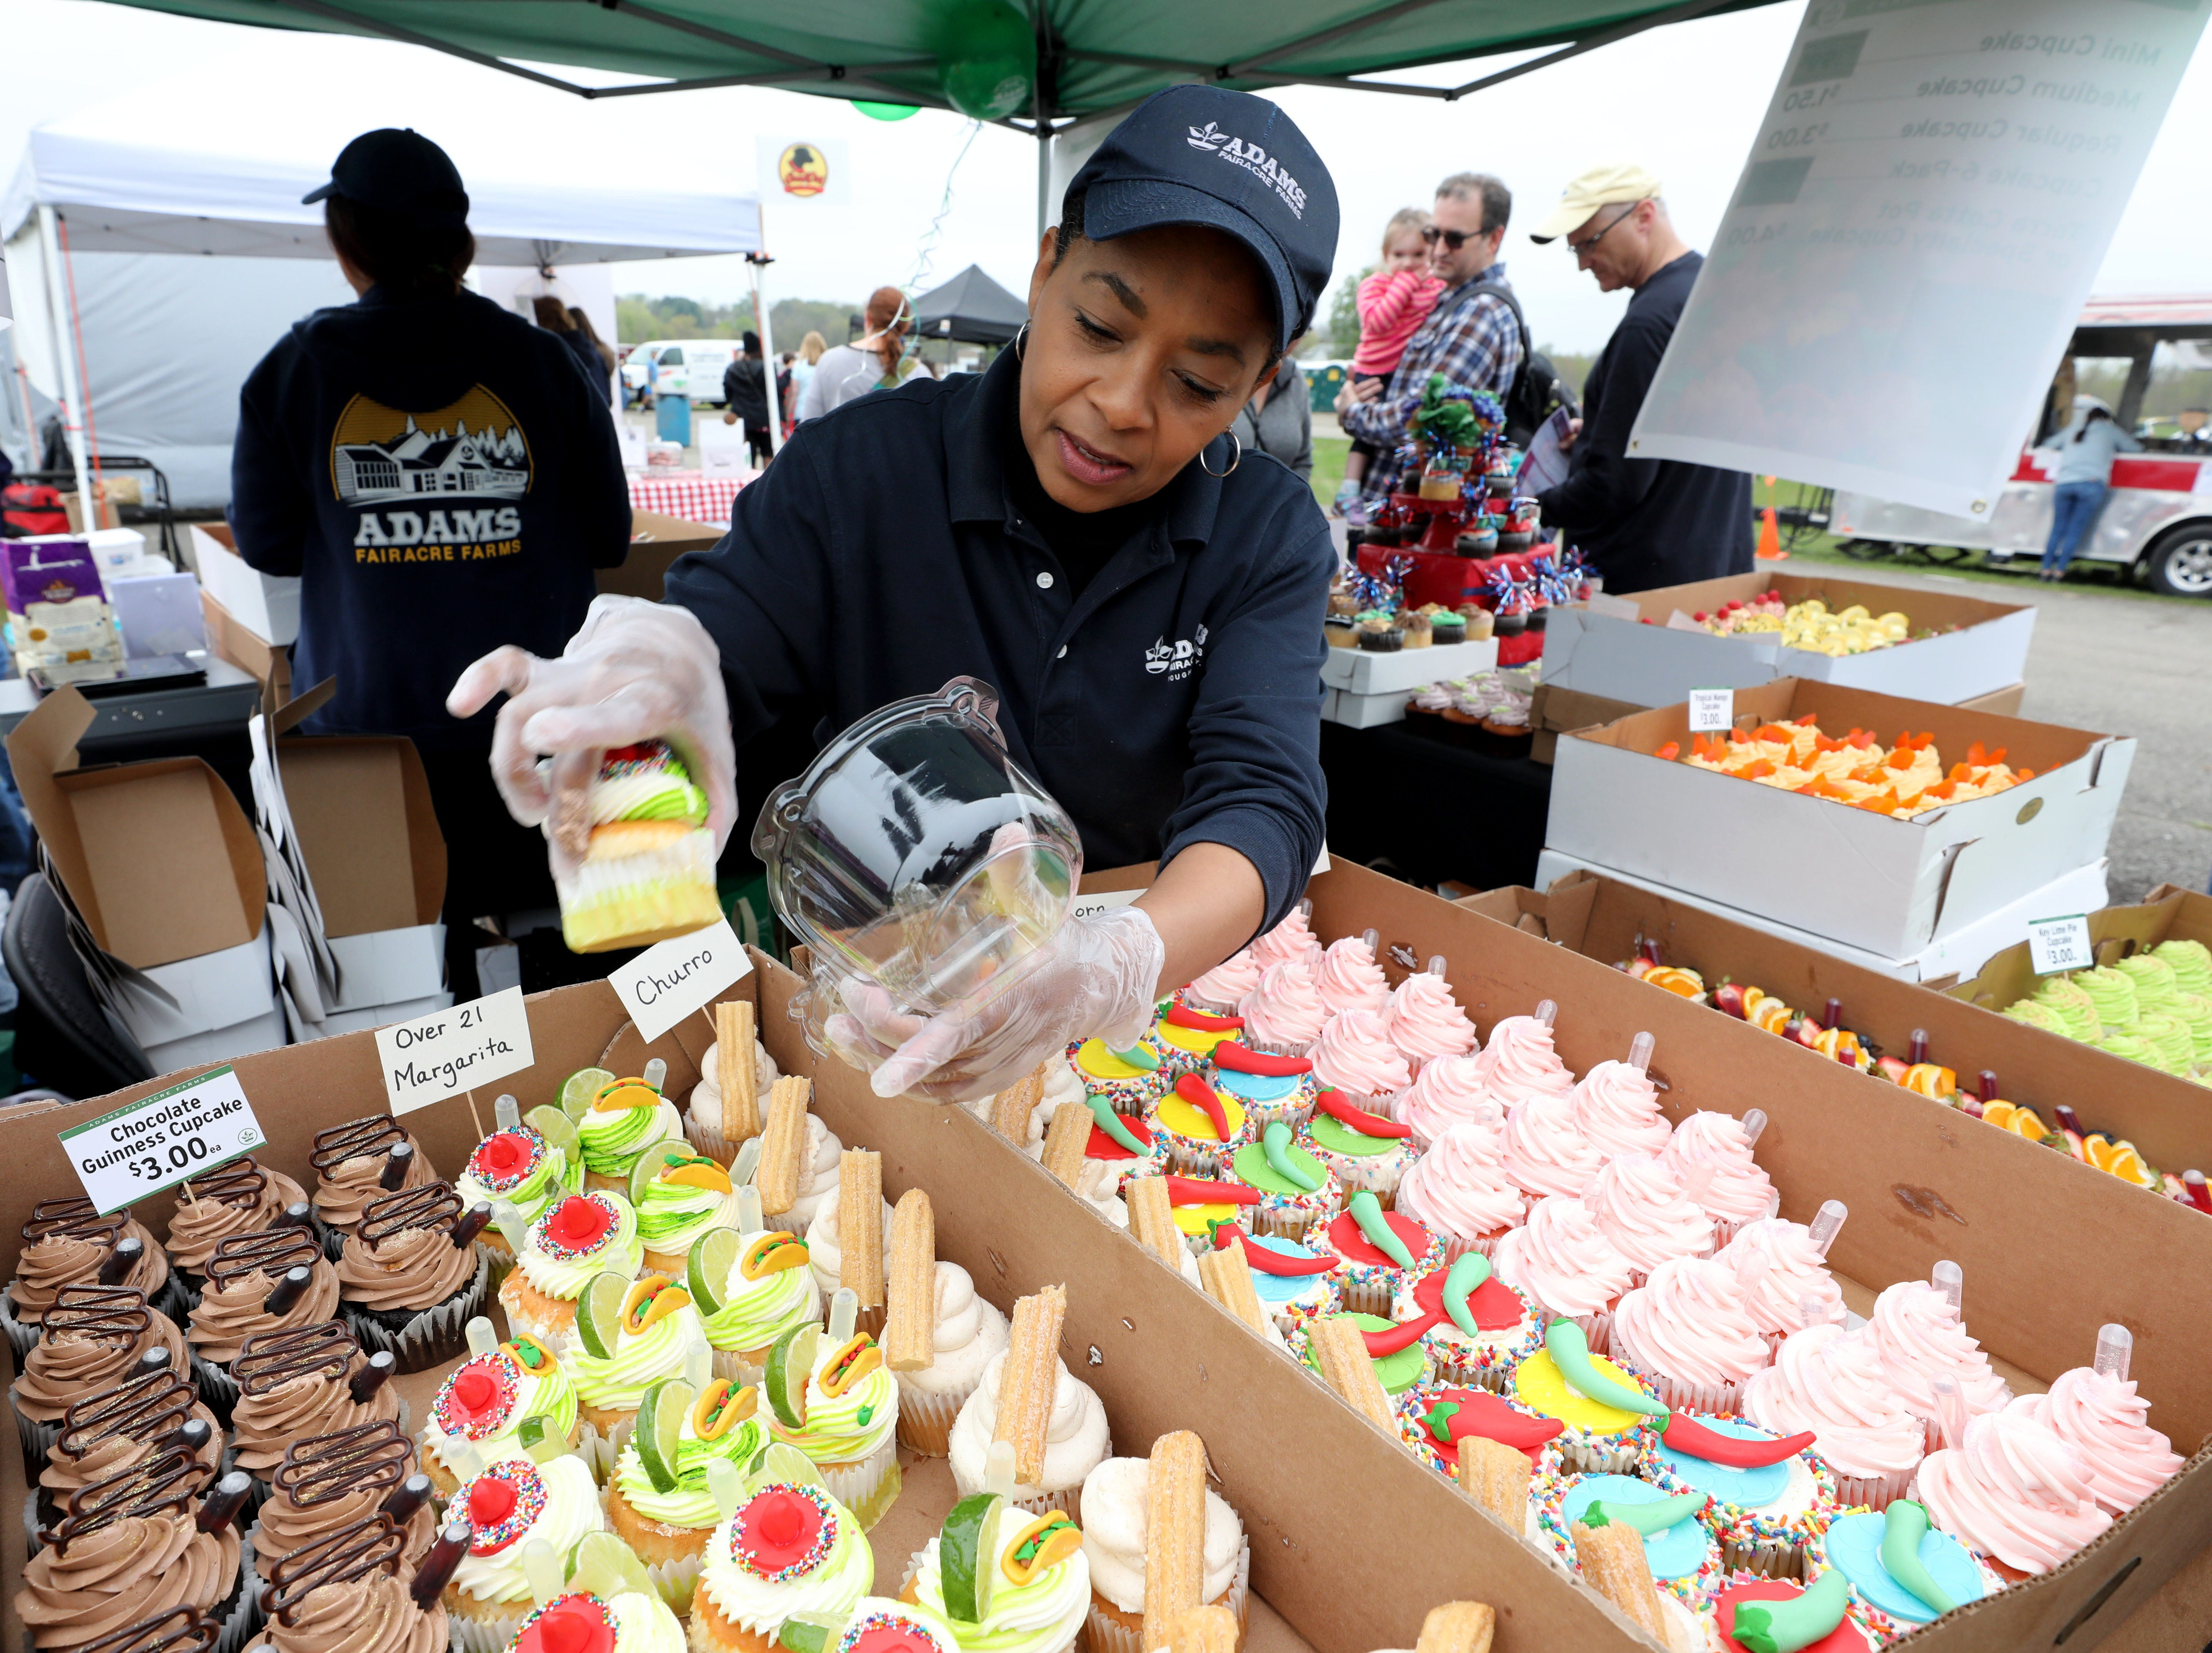 """Kay Taylor with the Adam's Fairacre Farms booth, selects an """"Over 21 Margarita"""" cupcake for a customer, during the K104.7 Cupcake Festival at the Stormville Airport, May 4, 2019.  See more photos and a video at Poughkeepsiejournal.com."""